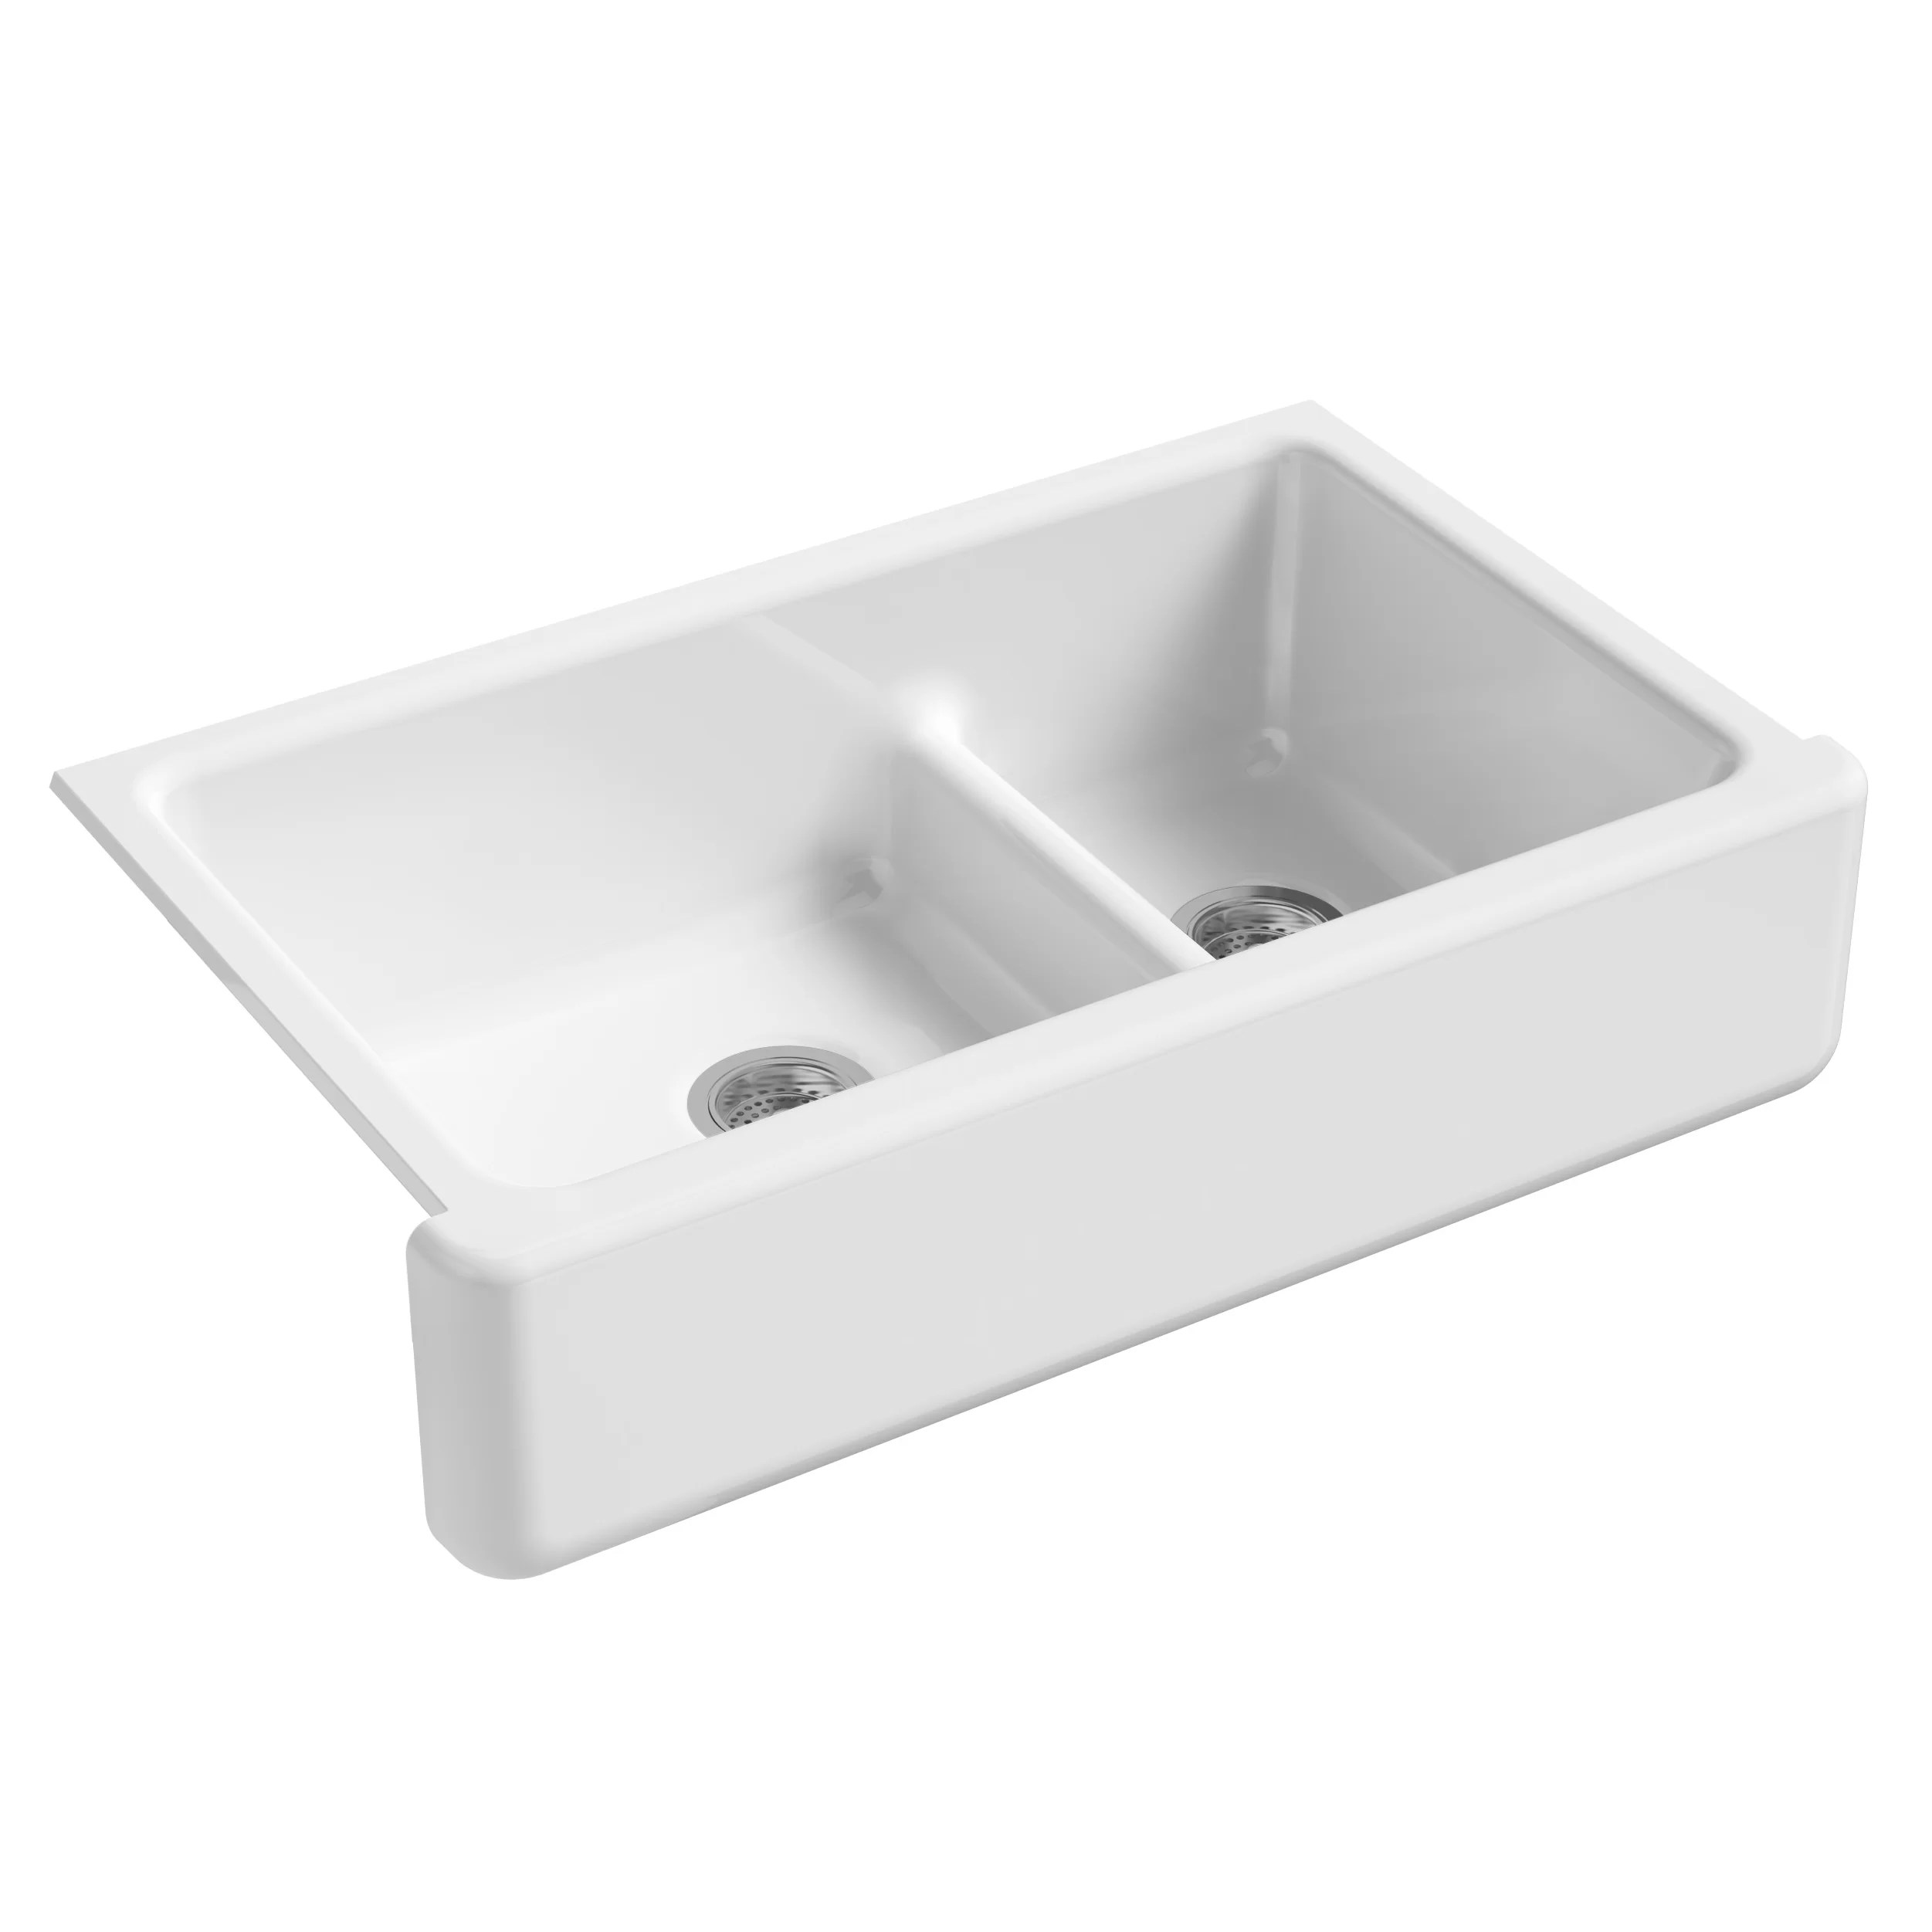 Kohler Whitehaven Self Trimming Smart Divide 35 11 16 x 21 9 16 x 9 5 8 Under Mount Large Medium Double Bowl Kitchen Sink with Tall Apron